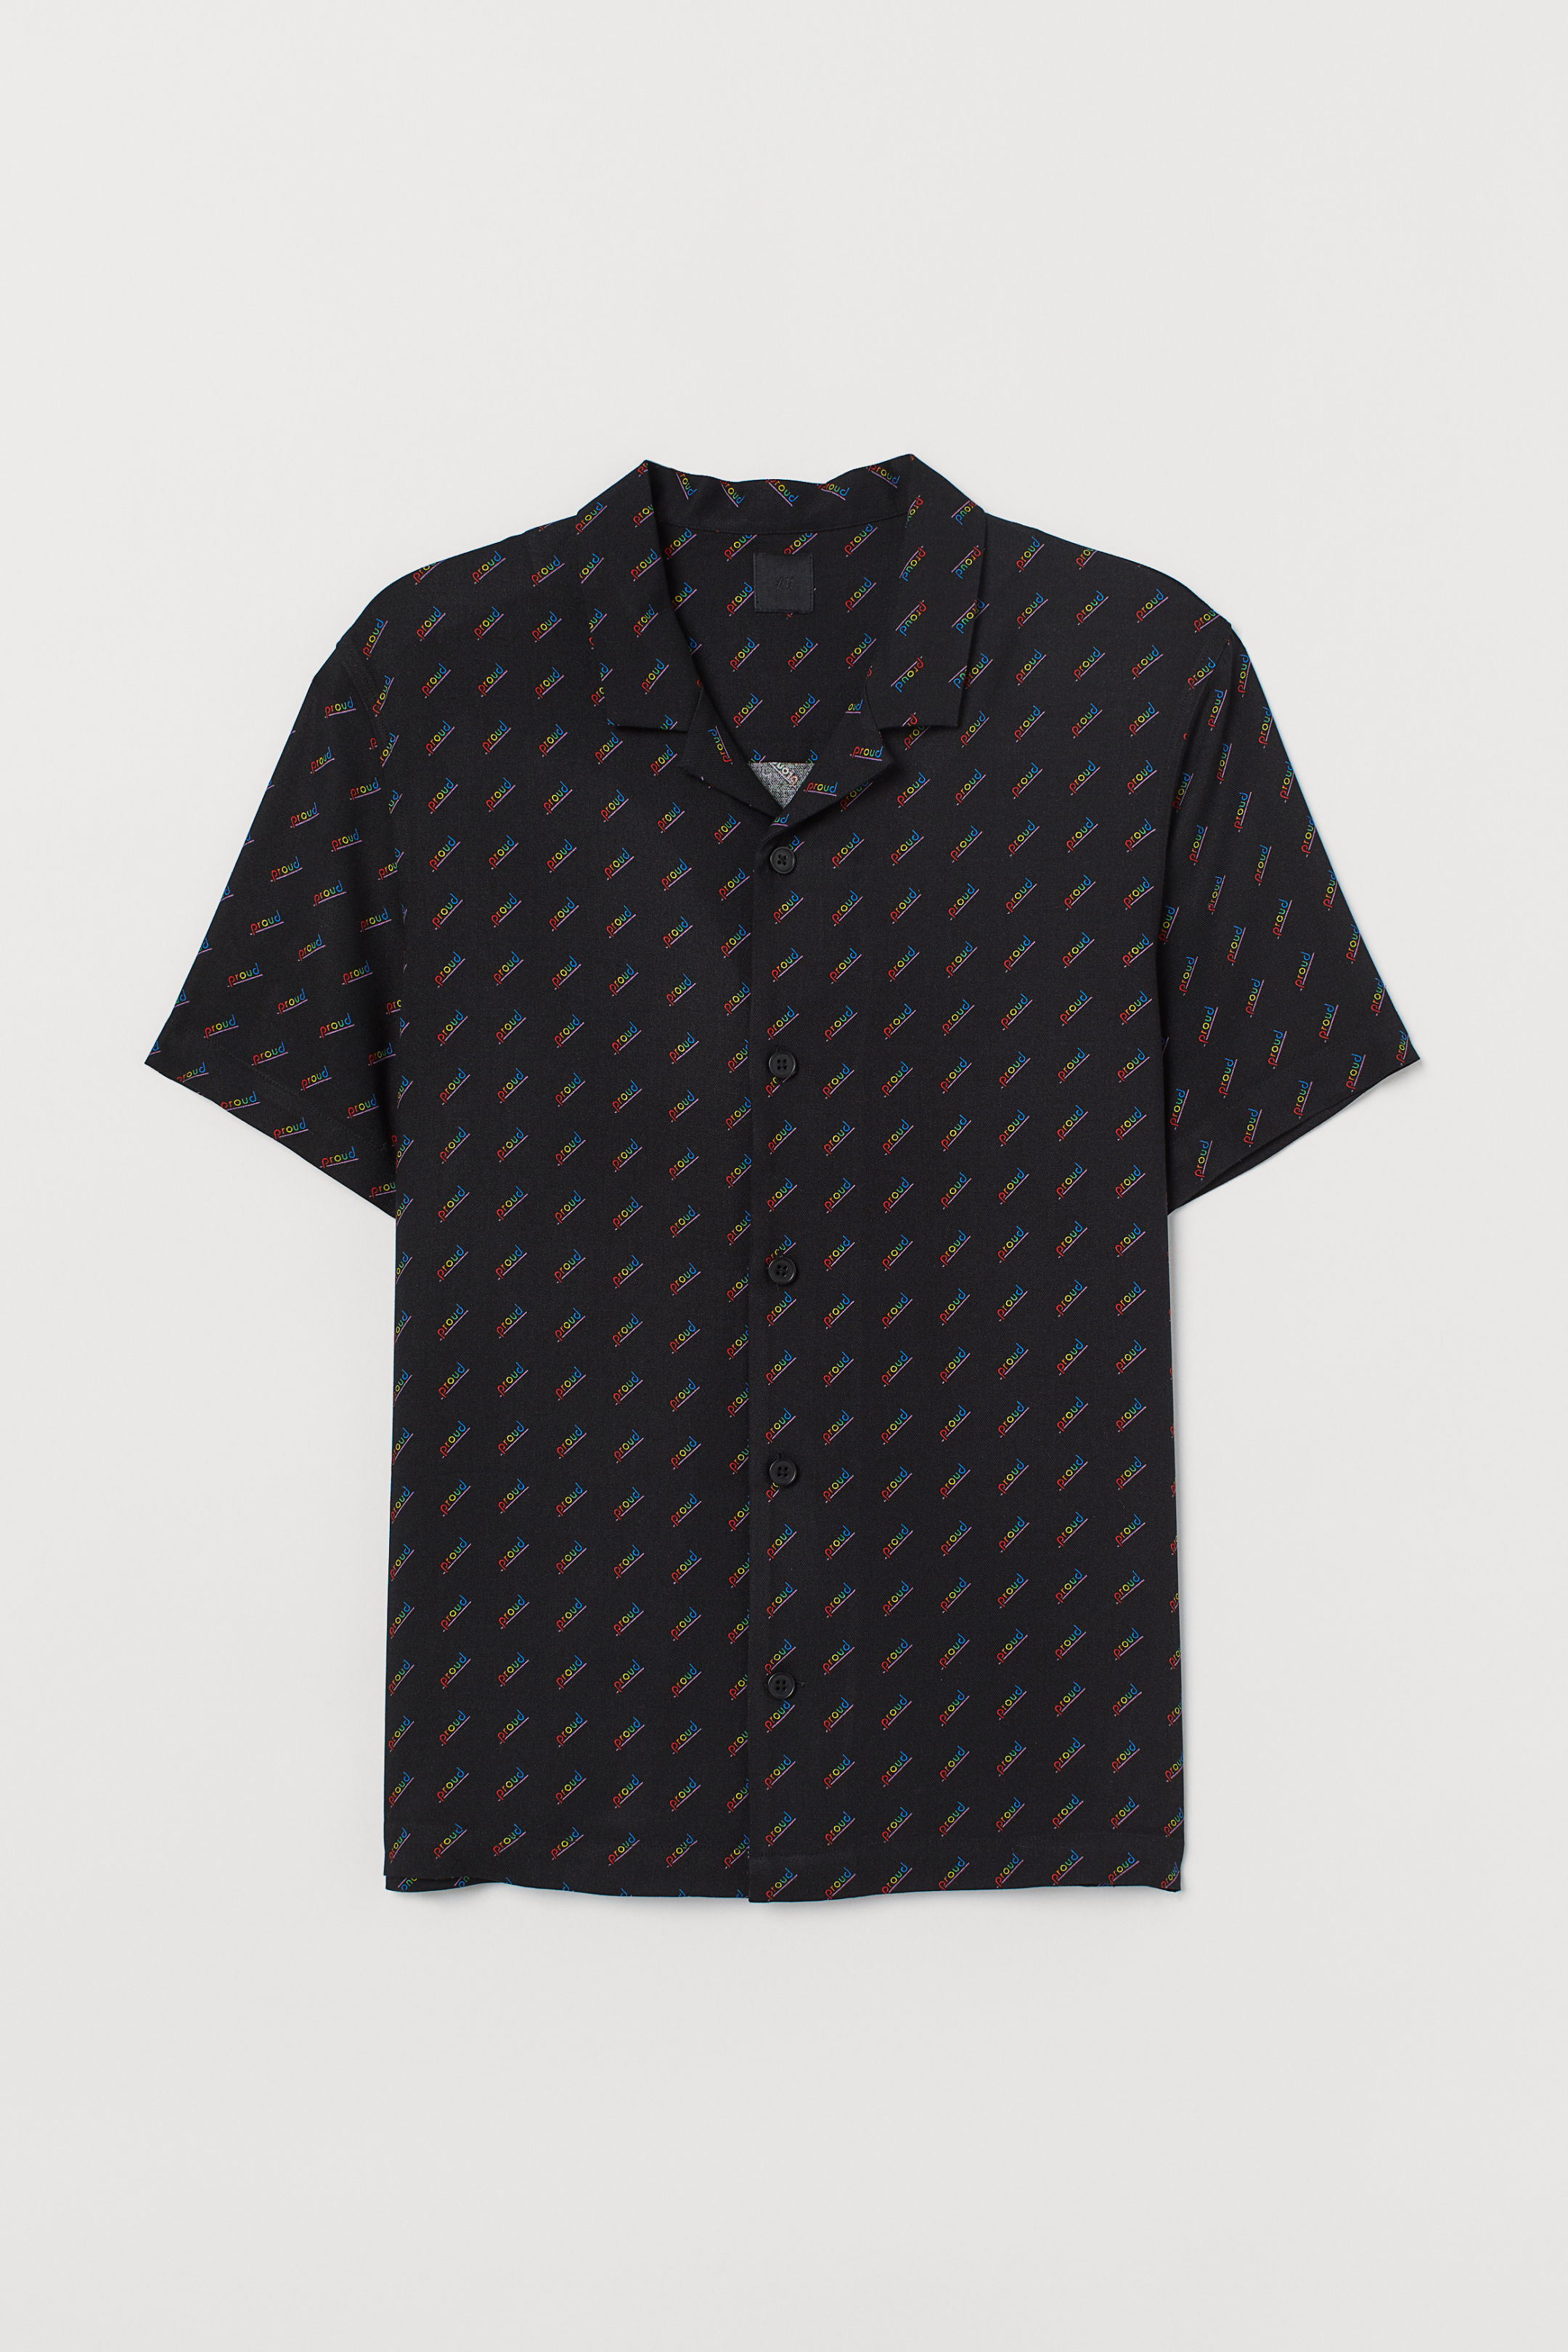 H&M shirt - £12.99 - Soft, resort style shirt perfect for summer drinks in the sun